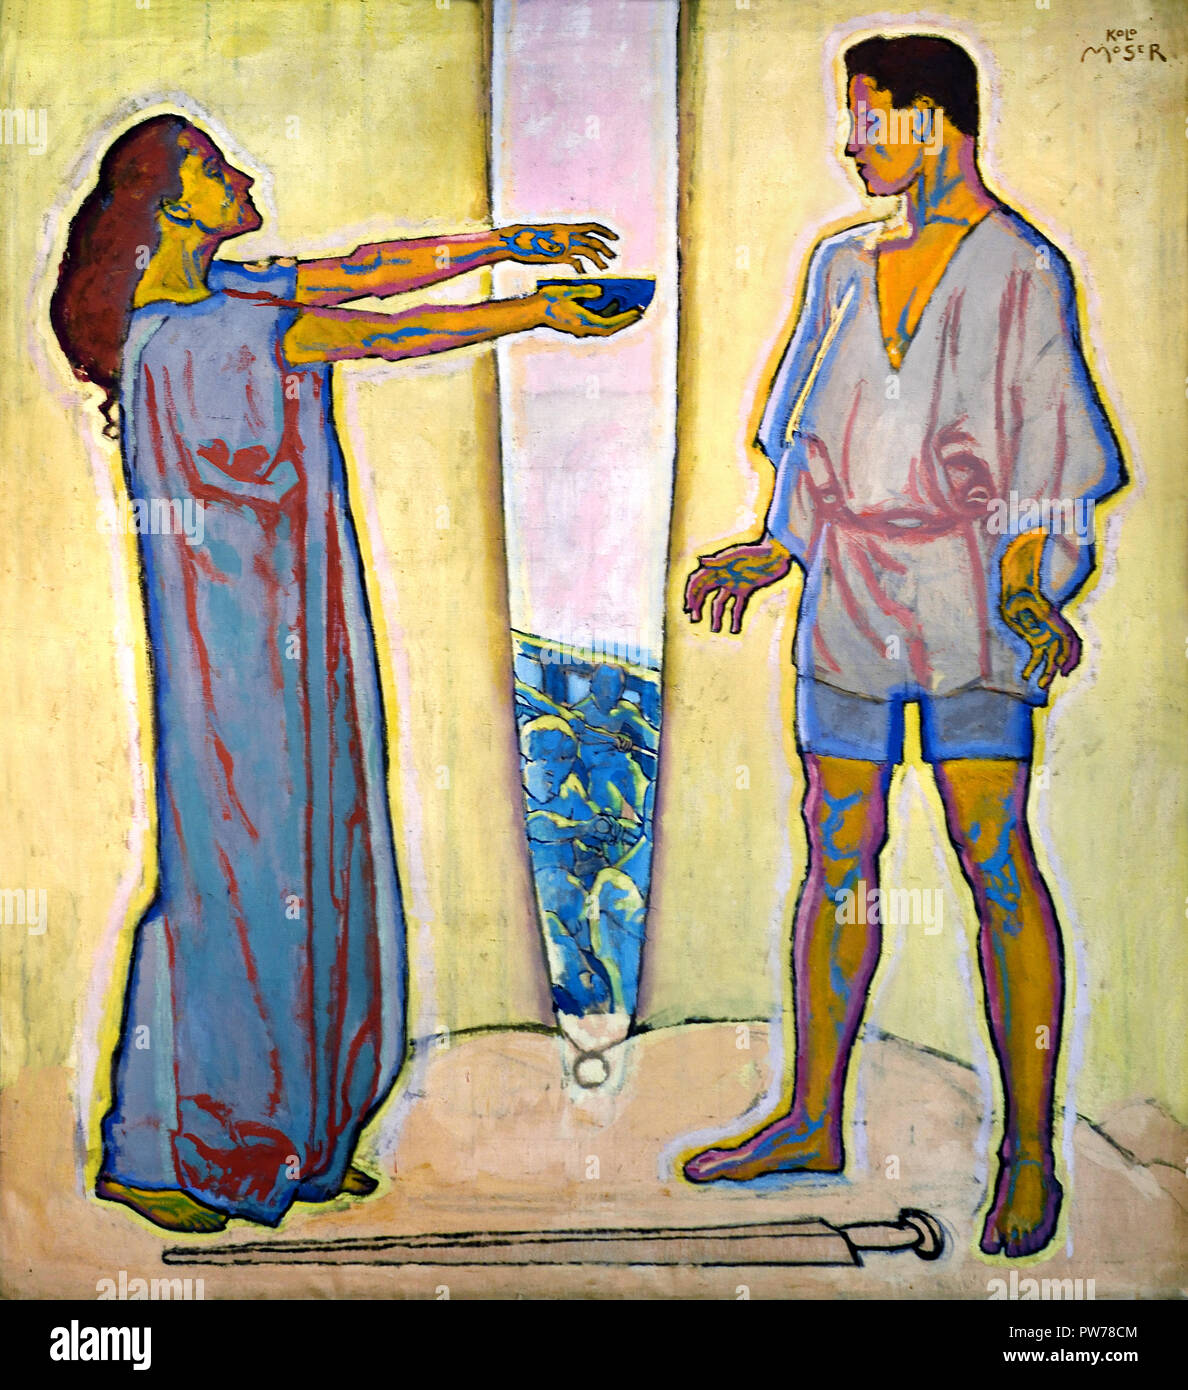 The Love potion (Tristan and Isolde) 1913-1915 Koloman Moser 1868 – 1918, Austrian artist painter Austria.( Tristan und Isolde is an opera, or music drama, in three acts by Richard Wagner to a German libretto by the composer ) - Stock Image